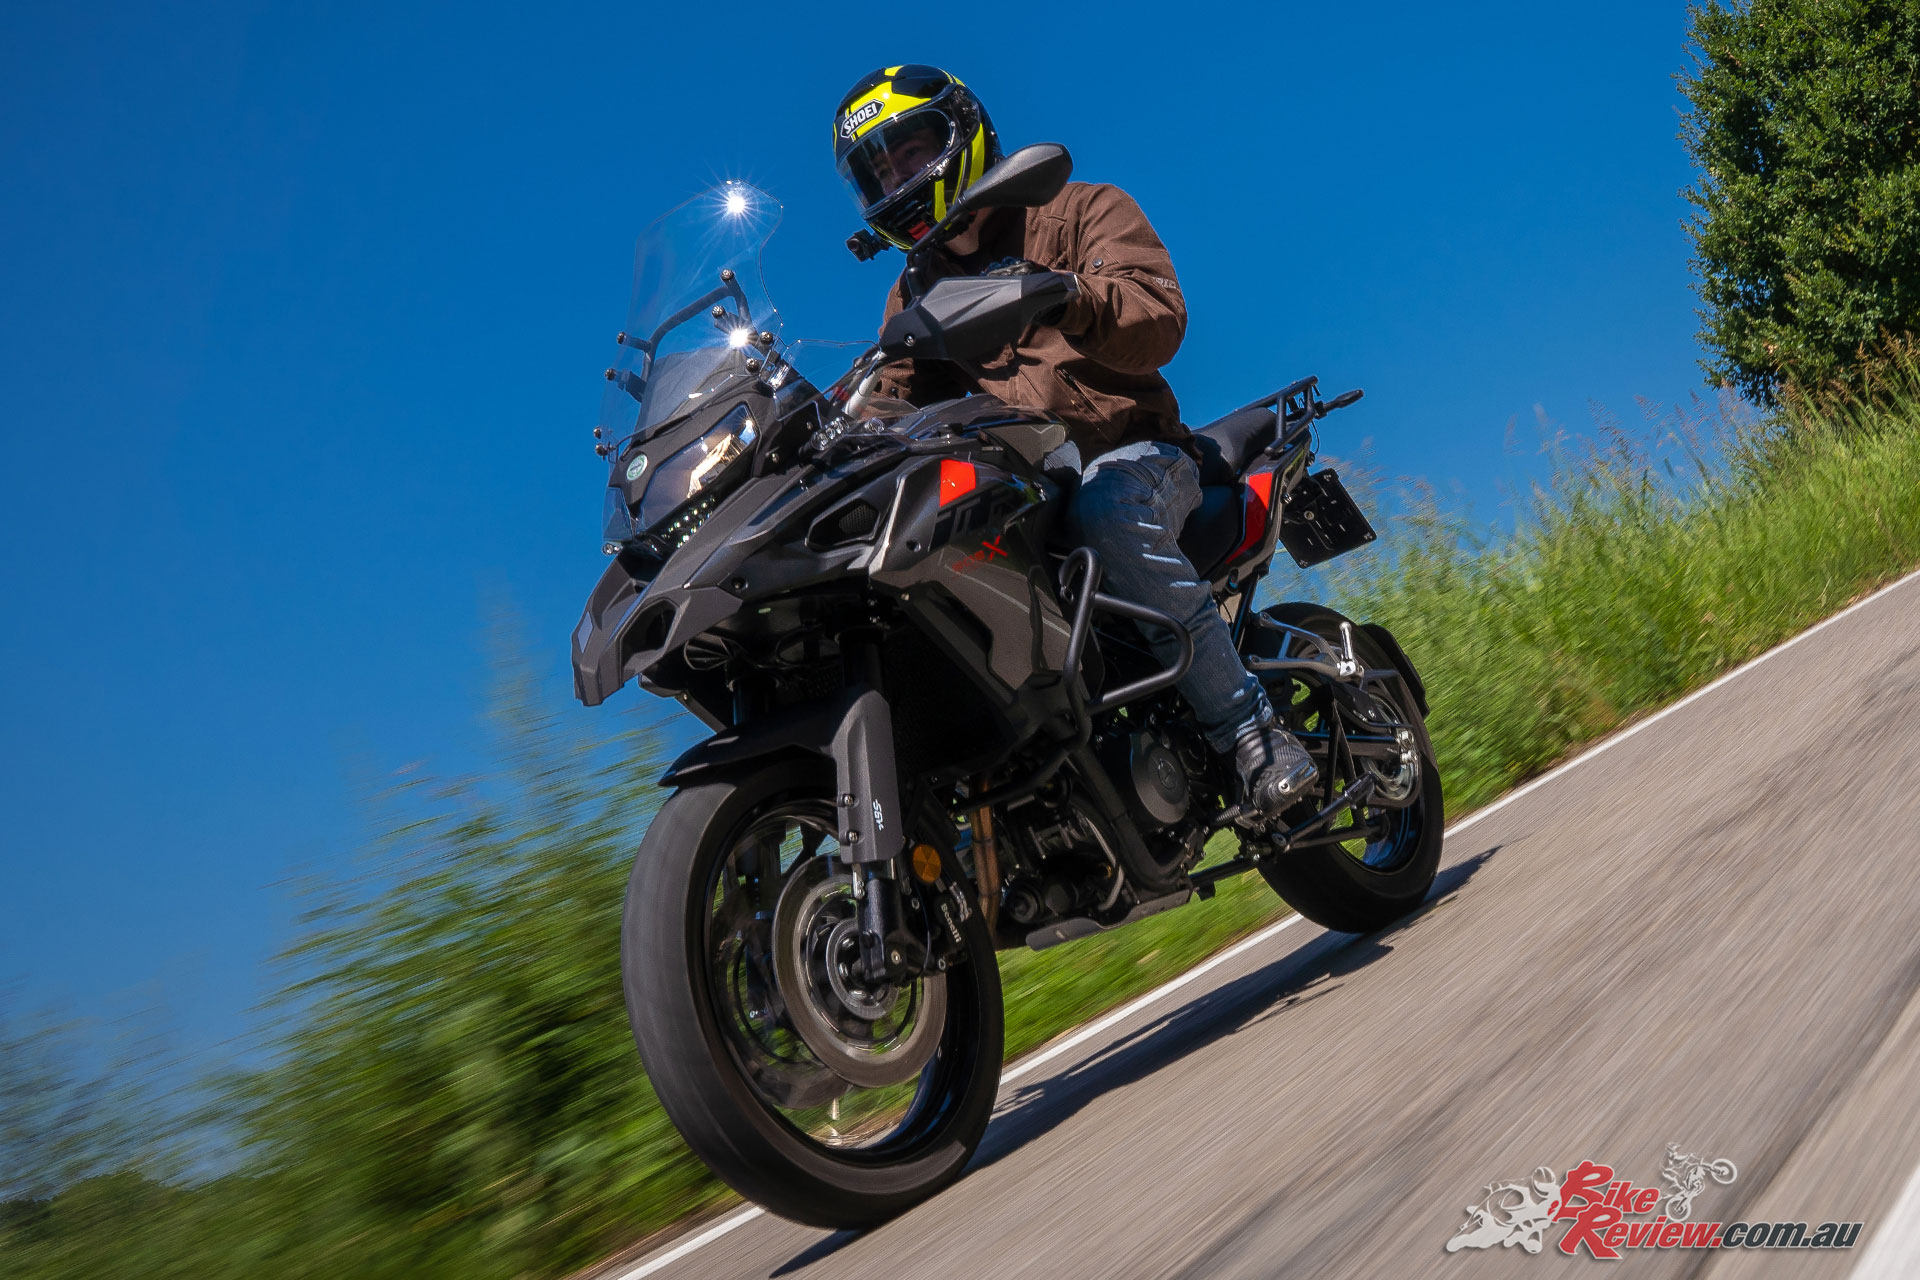 Benelli Italy told us the TRK is the fourth best selling motorcycle in their market.